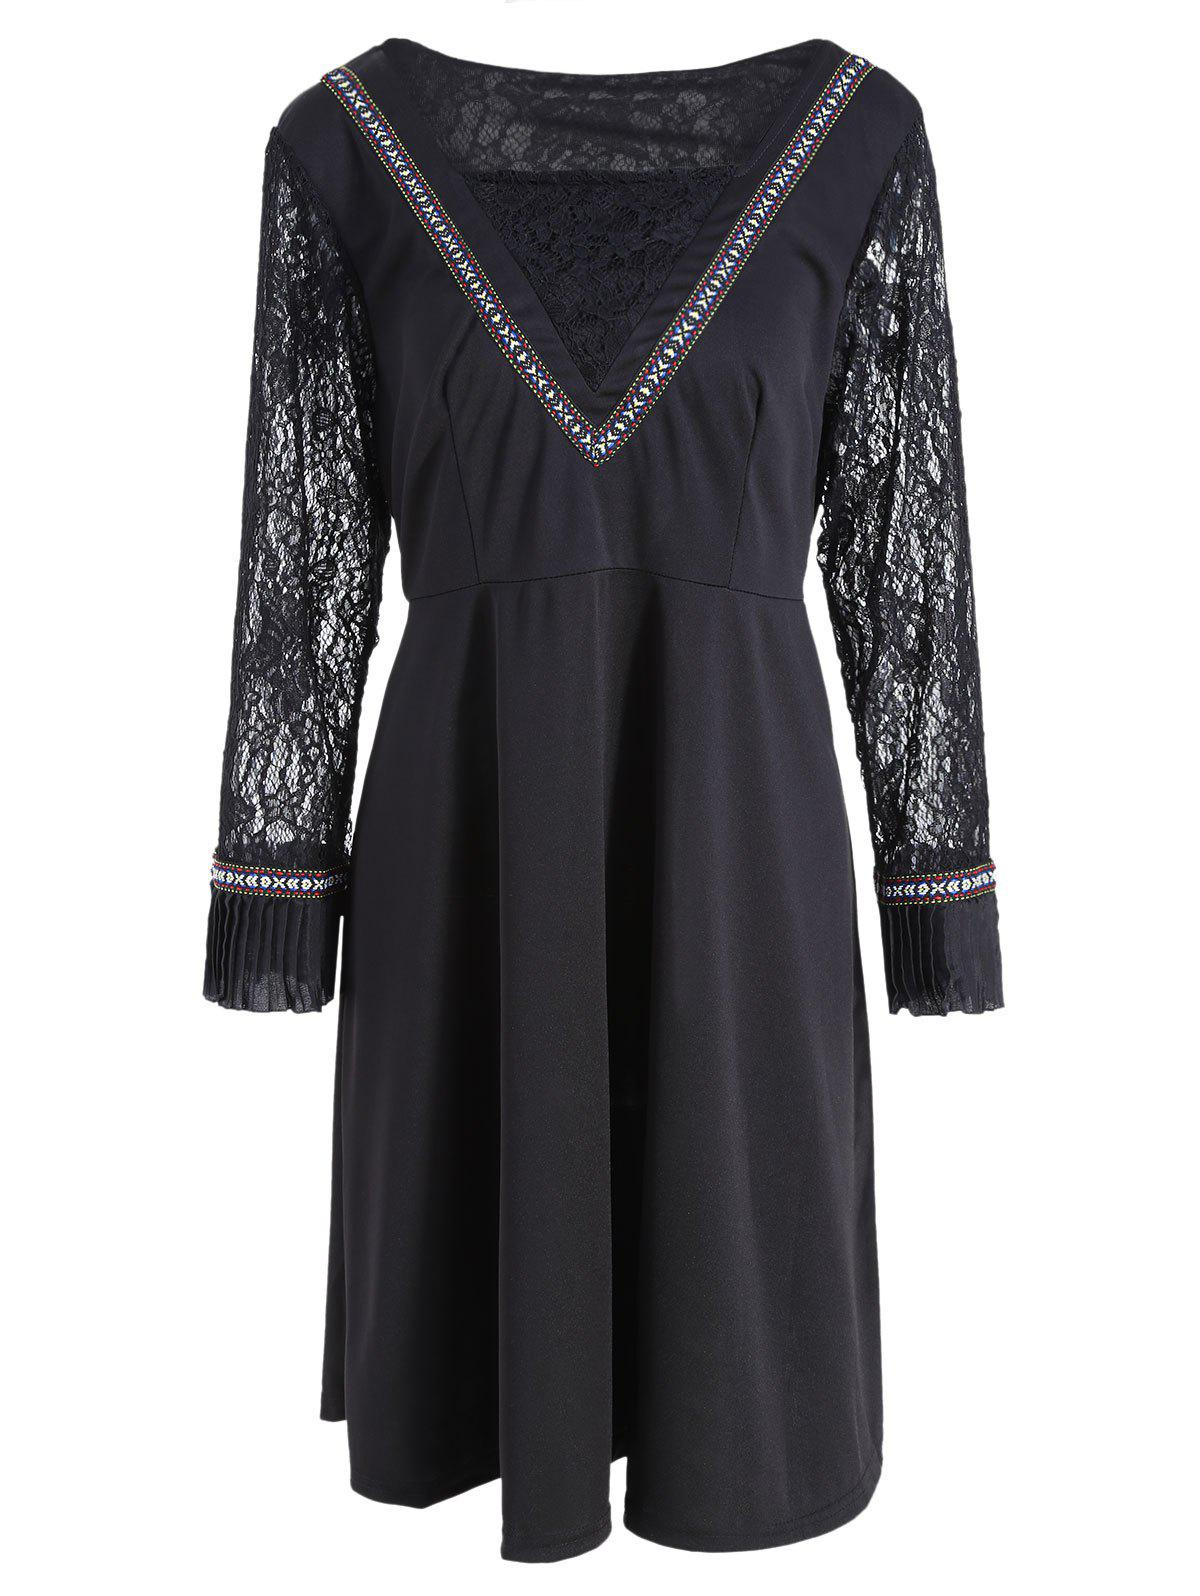 Lace Panel Bell Sleeve Plus Size Knee Length Dress - BLACK 3XL